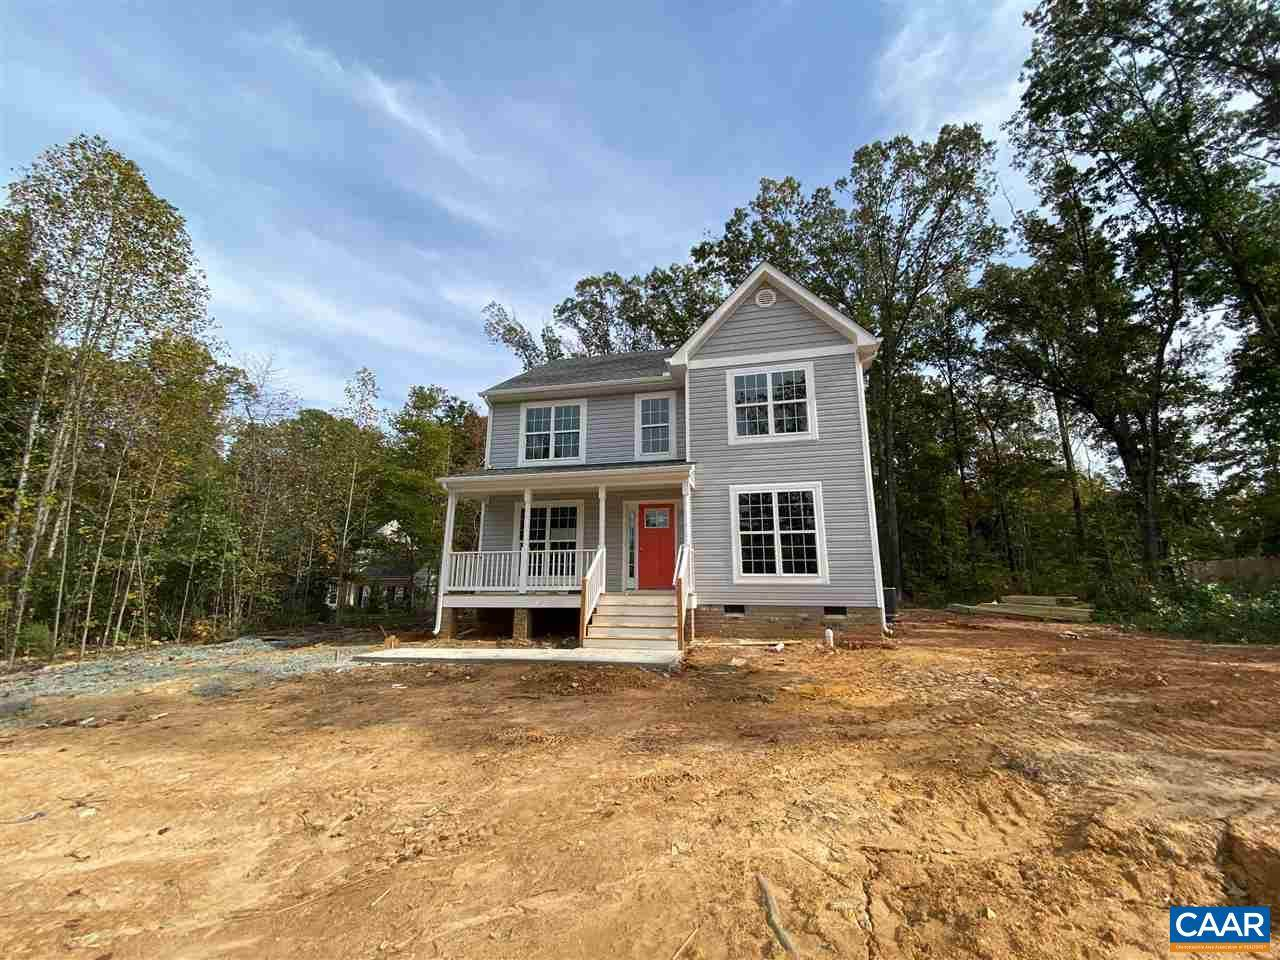 Lot 60 Reedy Creek Rd - Photo 1